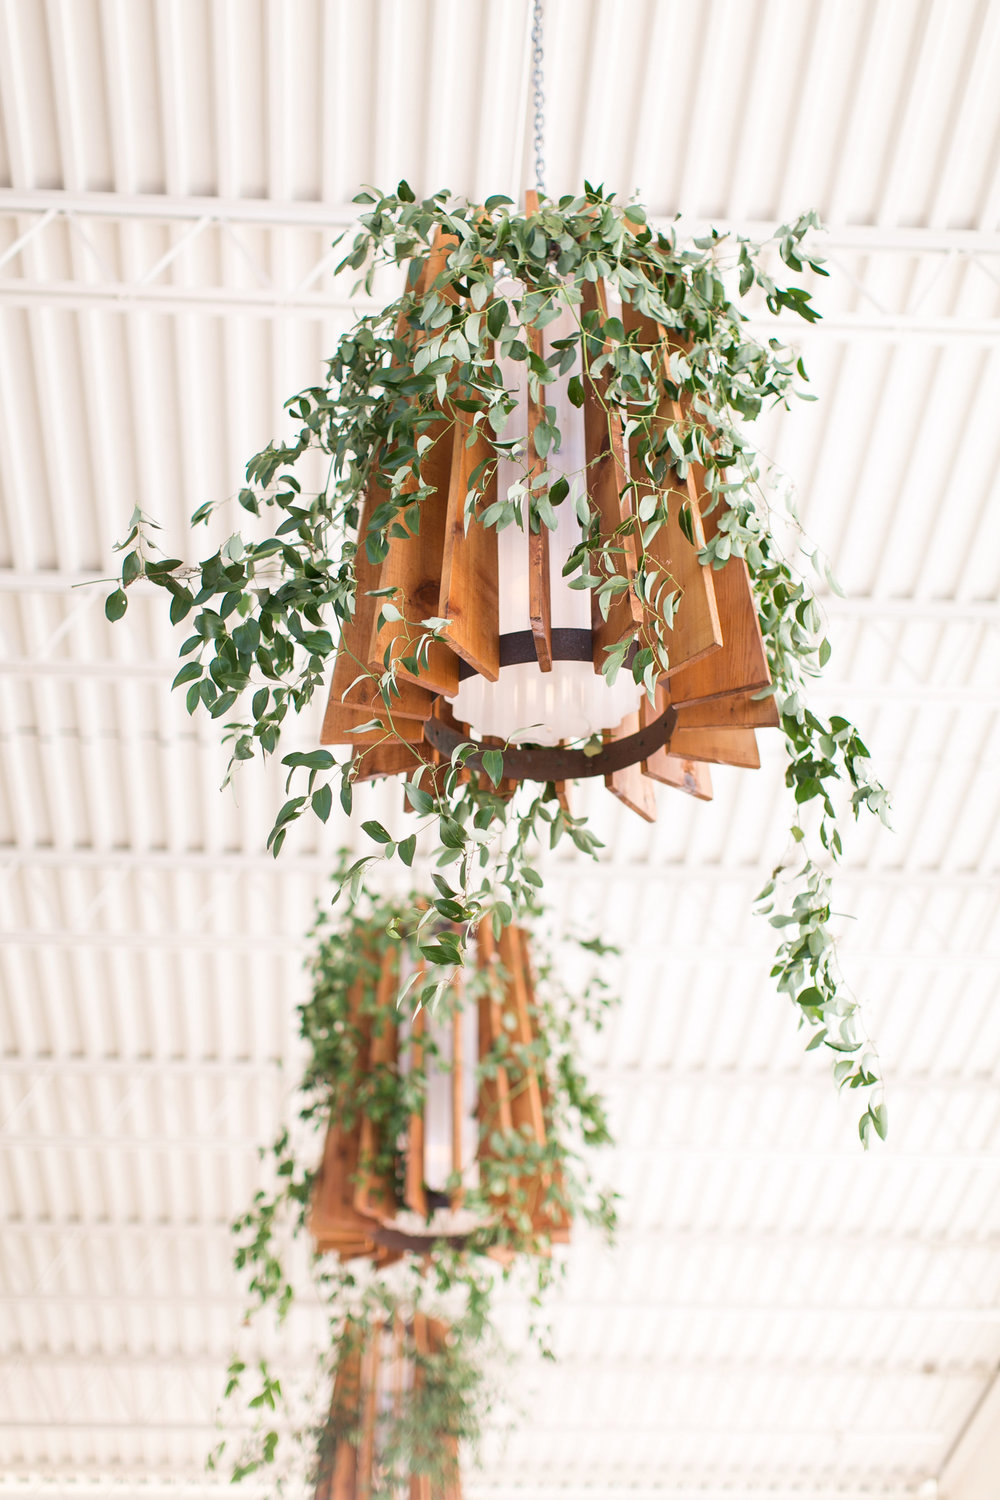 Photo: Janeane Marie Photography // Venue: Barr Mansion // Greenery: STEMS Floral & Design